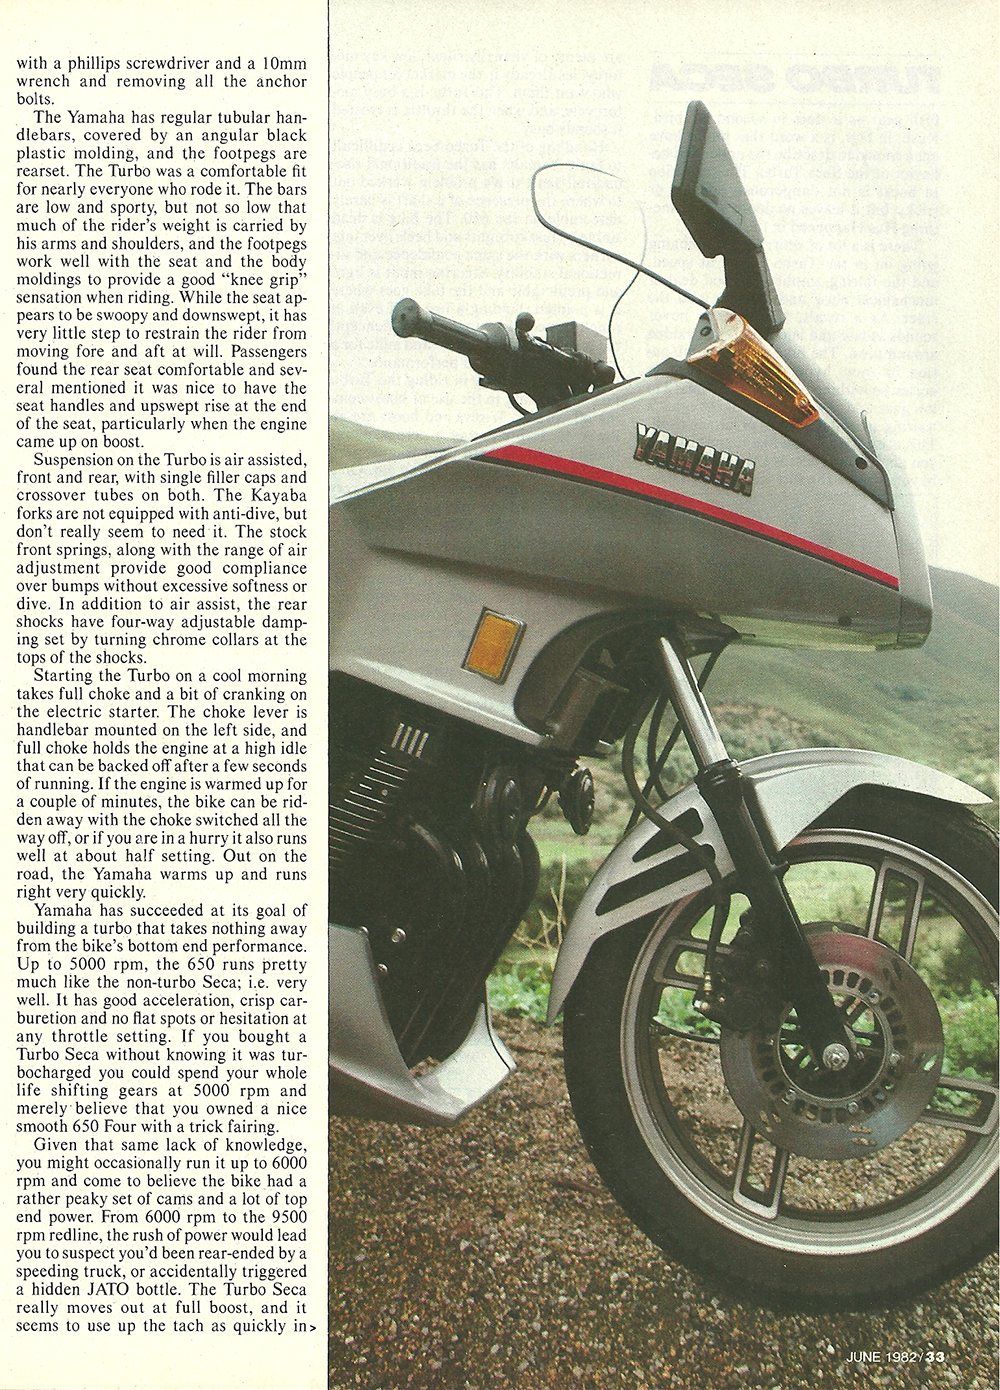 1982 Yamaha Turbo Seca 650 road test 06.jpg